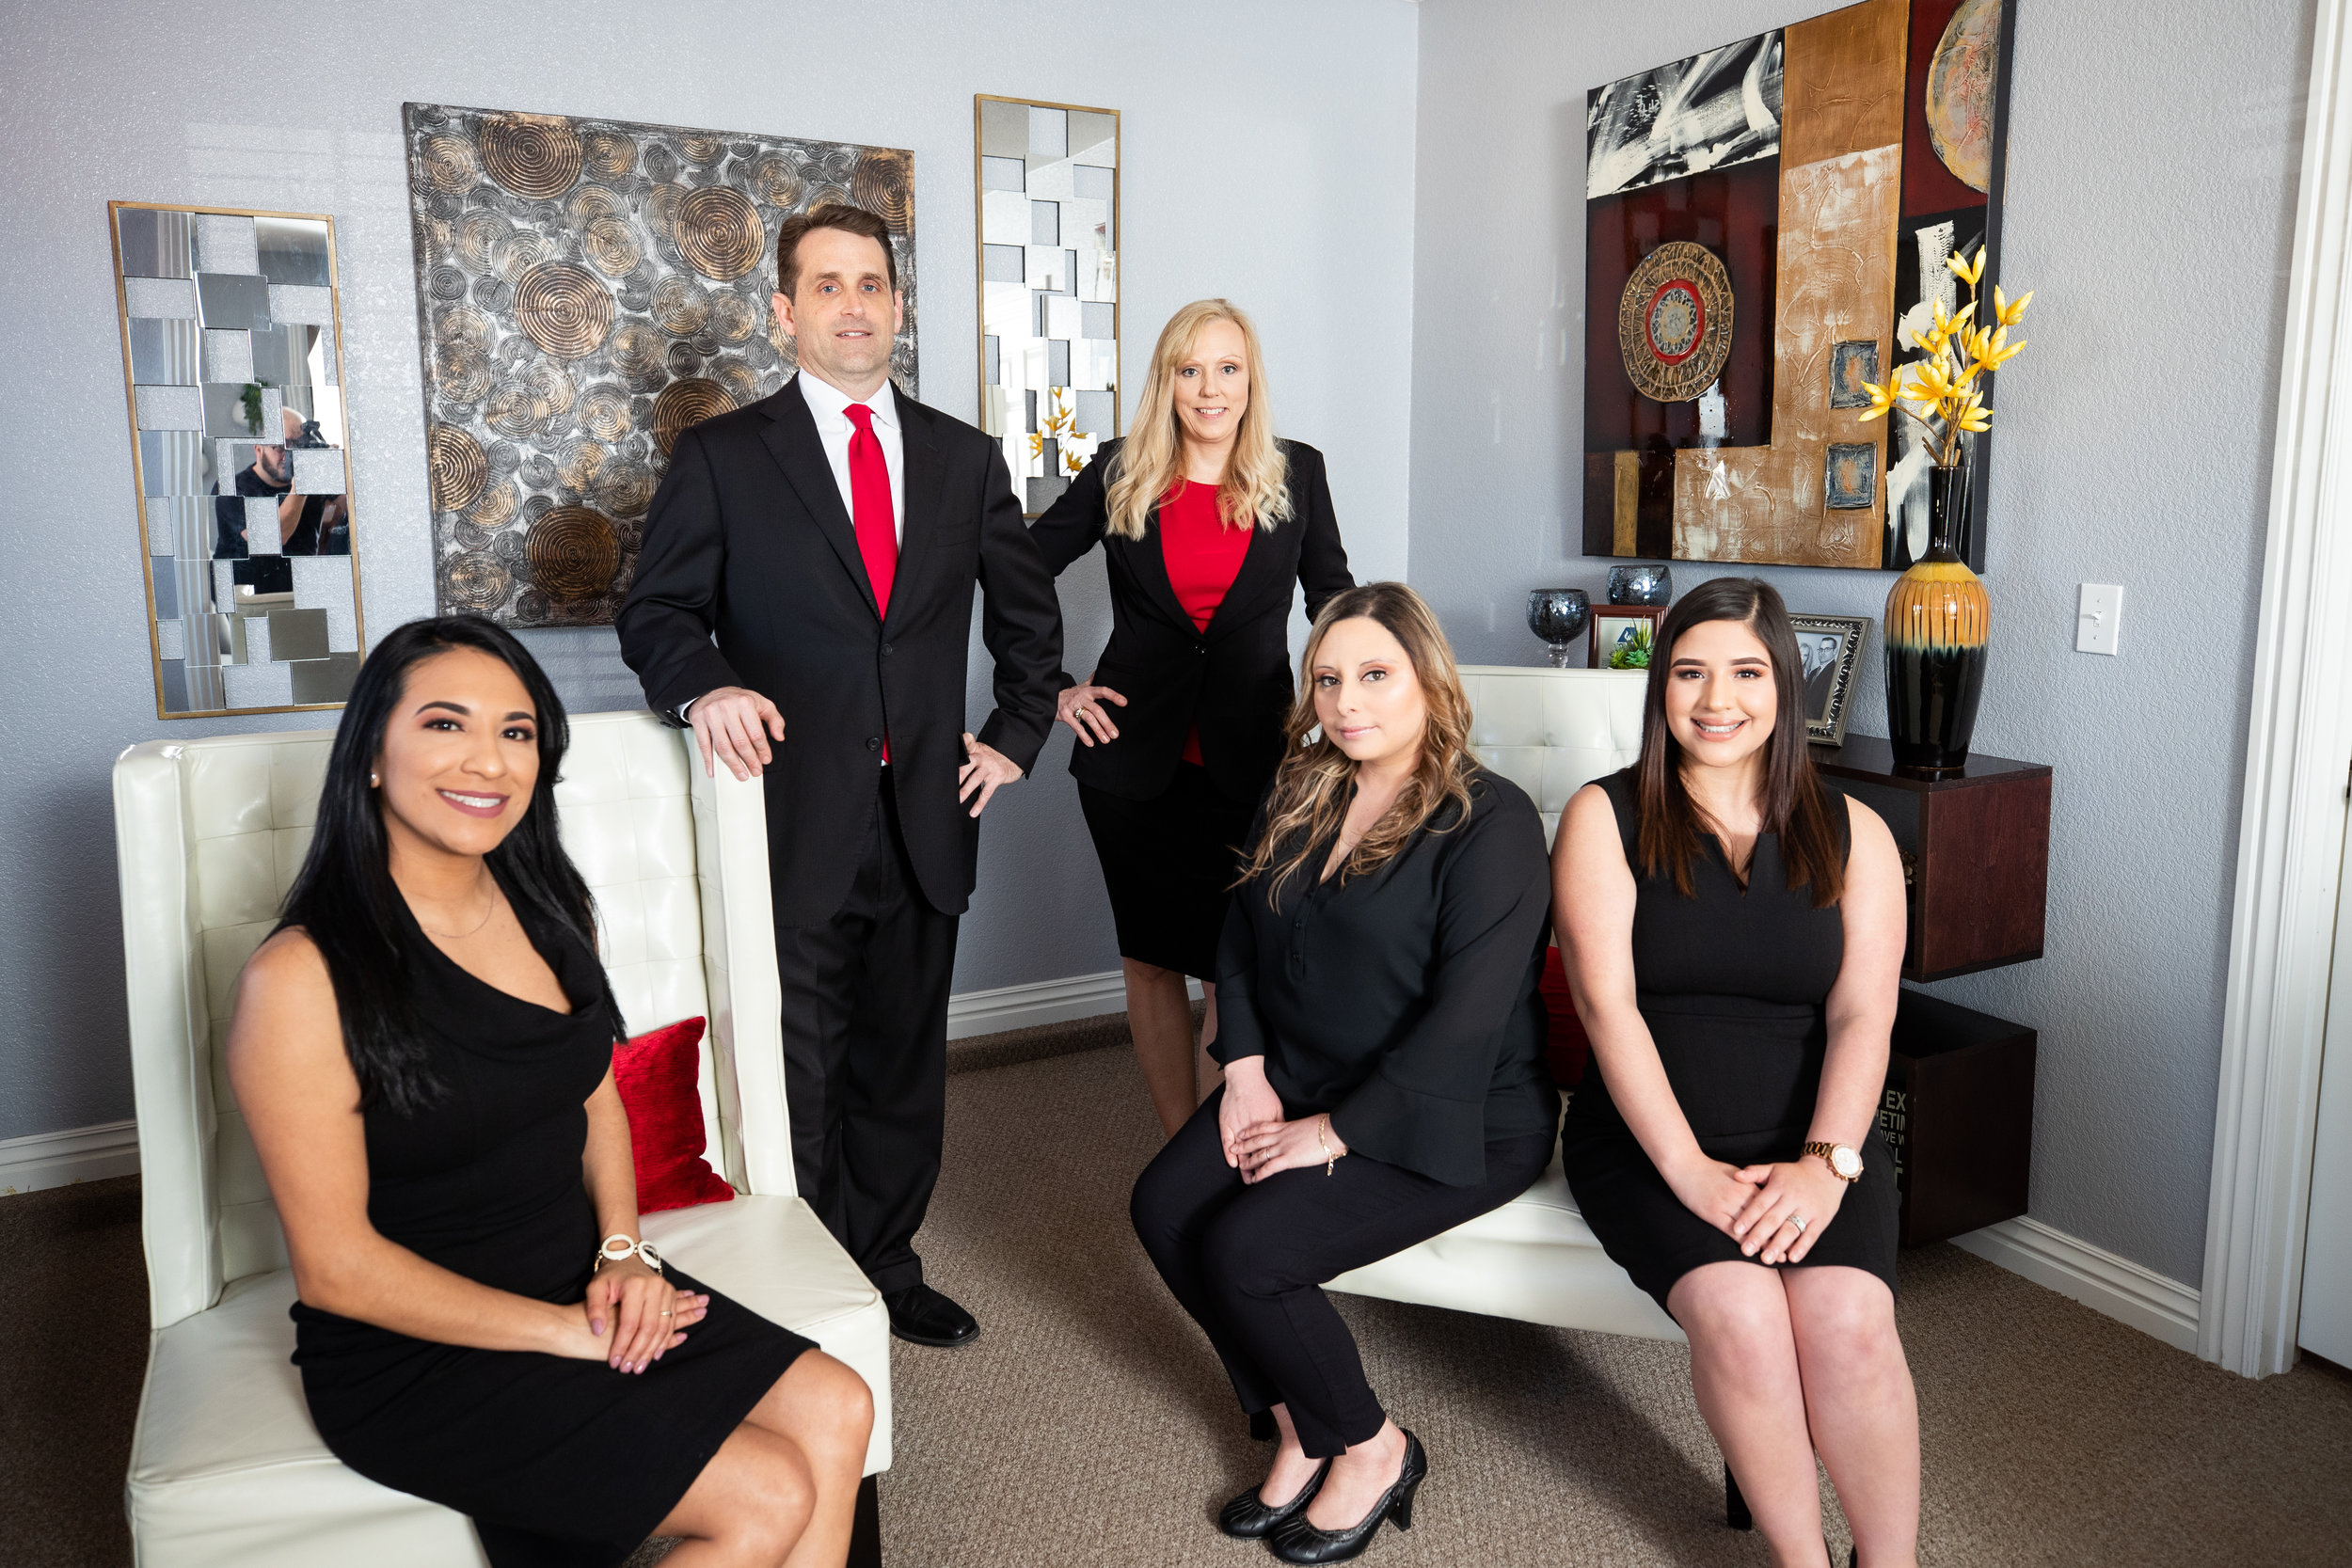 McManus Law Firm - Springdale Arkansas - 2019-38.jpg